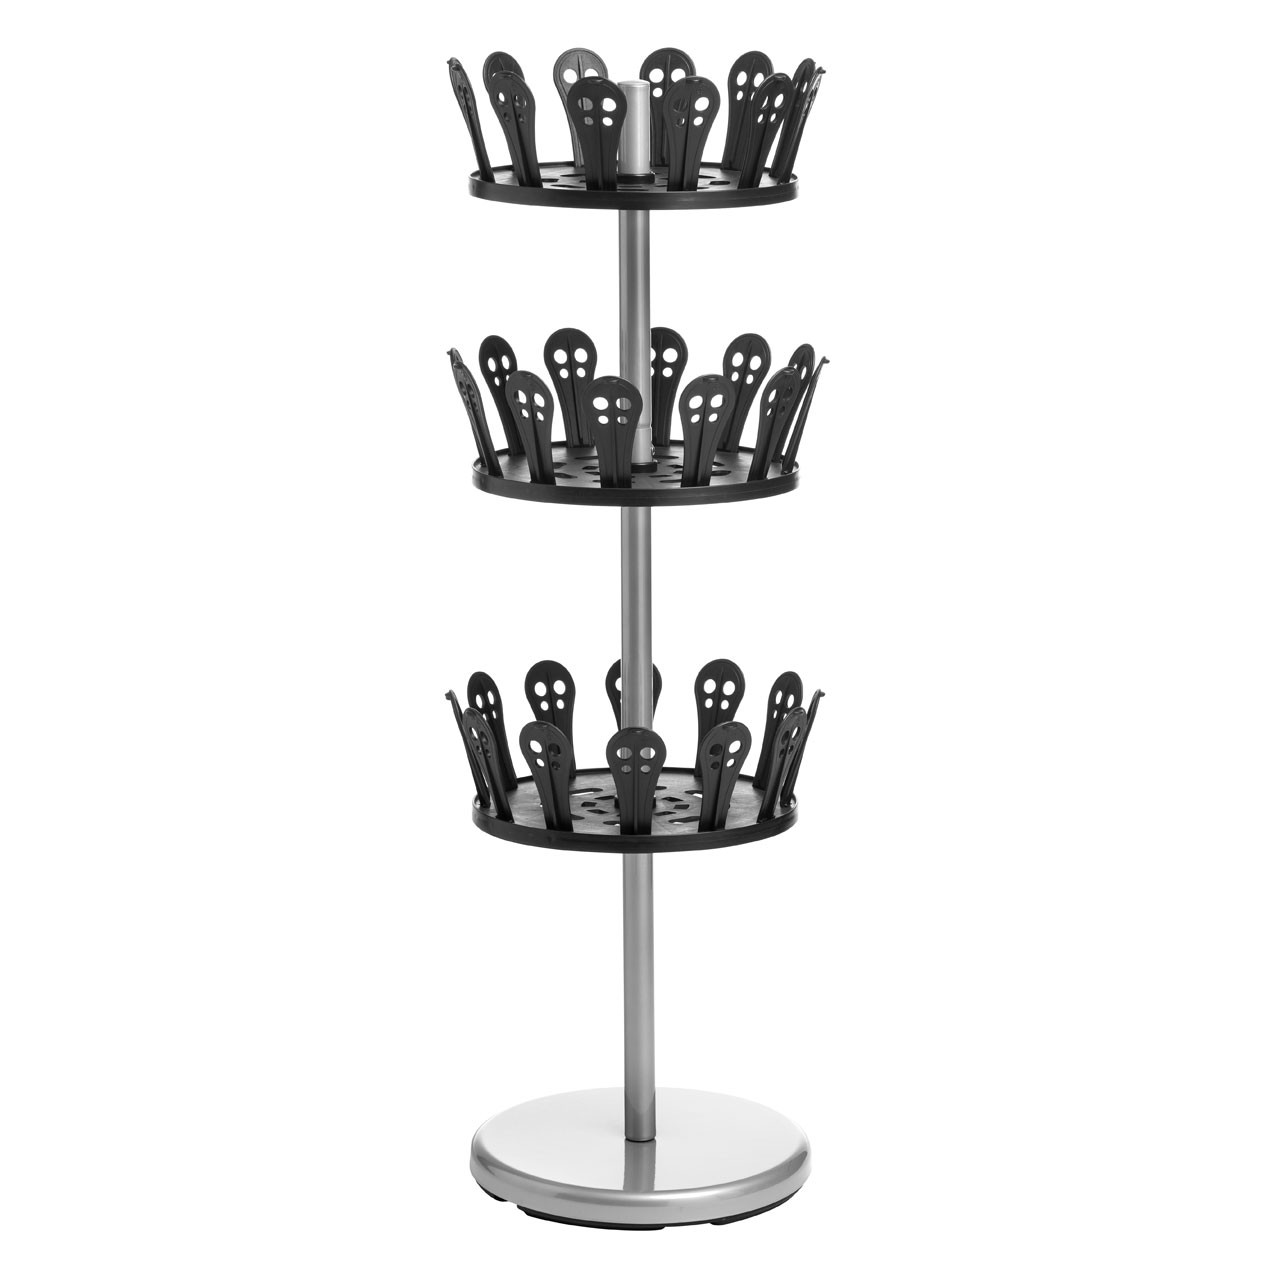 Prime Furnishing 3-Tier Revolving Shoe Stand - Black